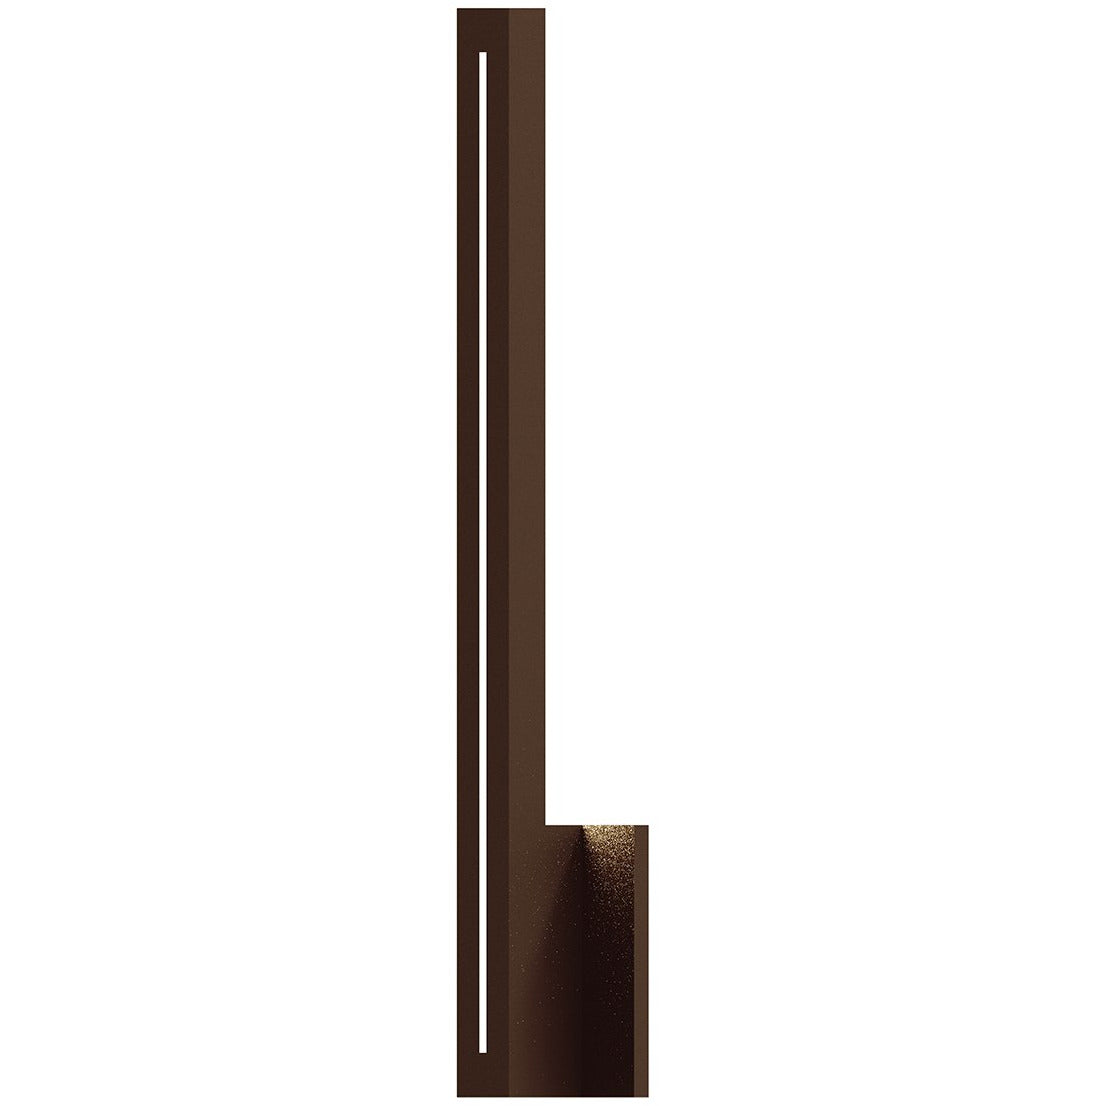 Sonneman - A Way of Light - 7113.72-WL - LED Wall Sconce - Stripe - Textured Bronze